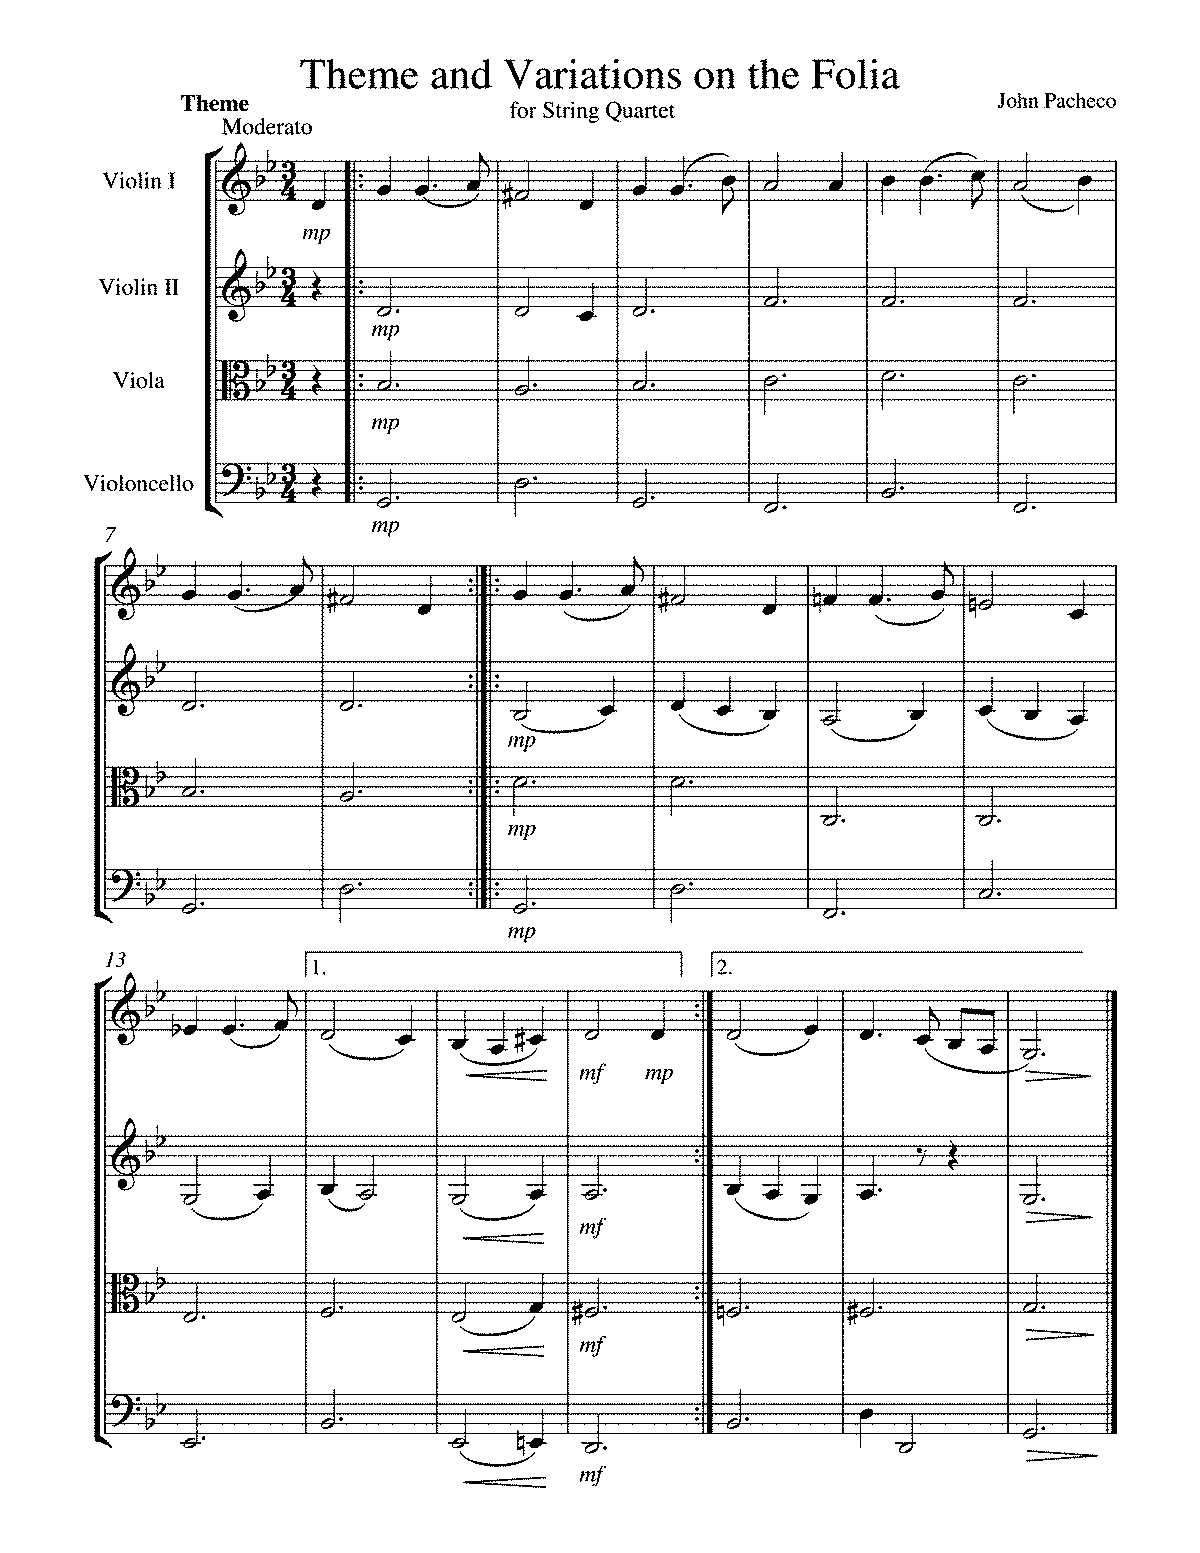 PMLP205726-Pacheco- Theme and Variations on the Folia (complete score).pdf